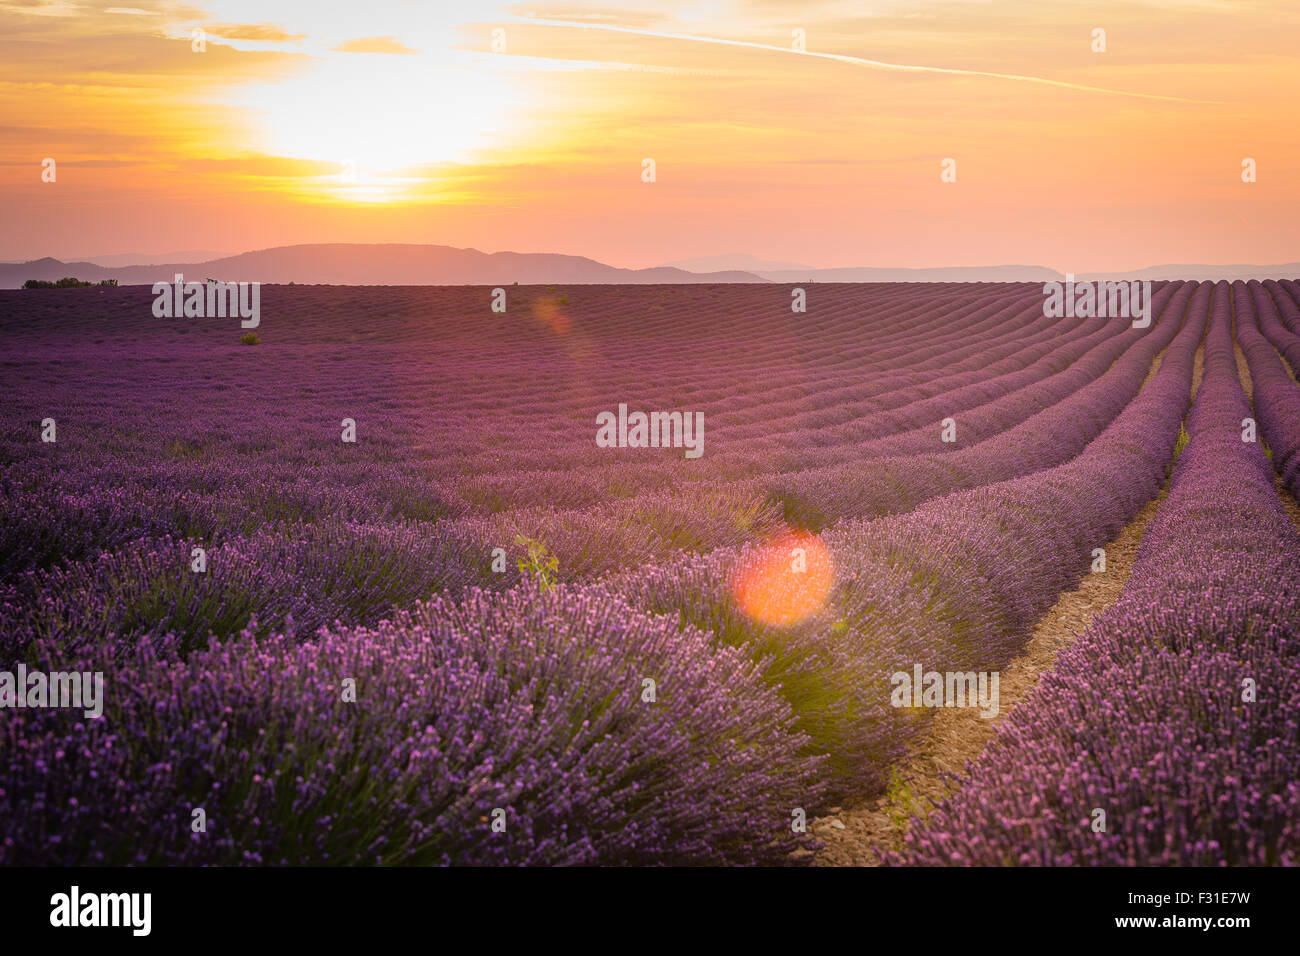 Provence, Valensole Plateau, Lavender field in bloom Stock Photo